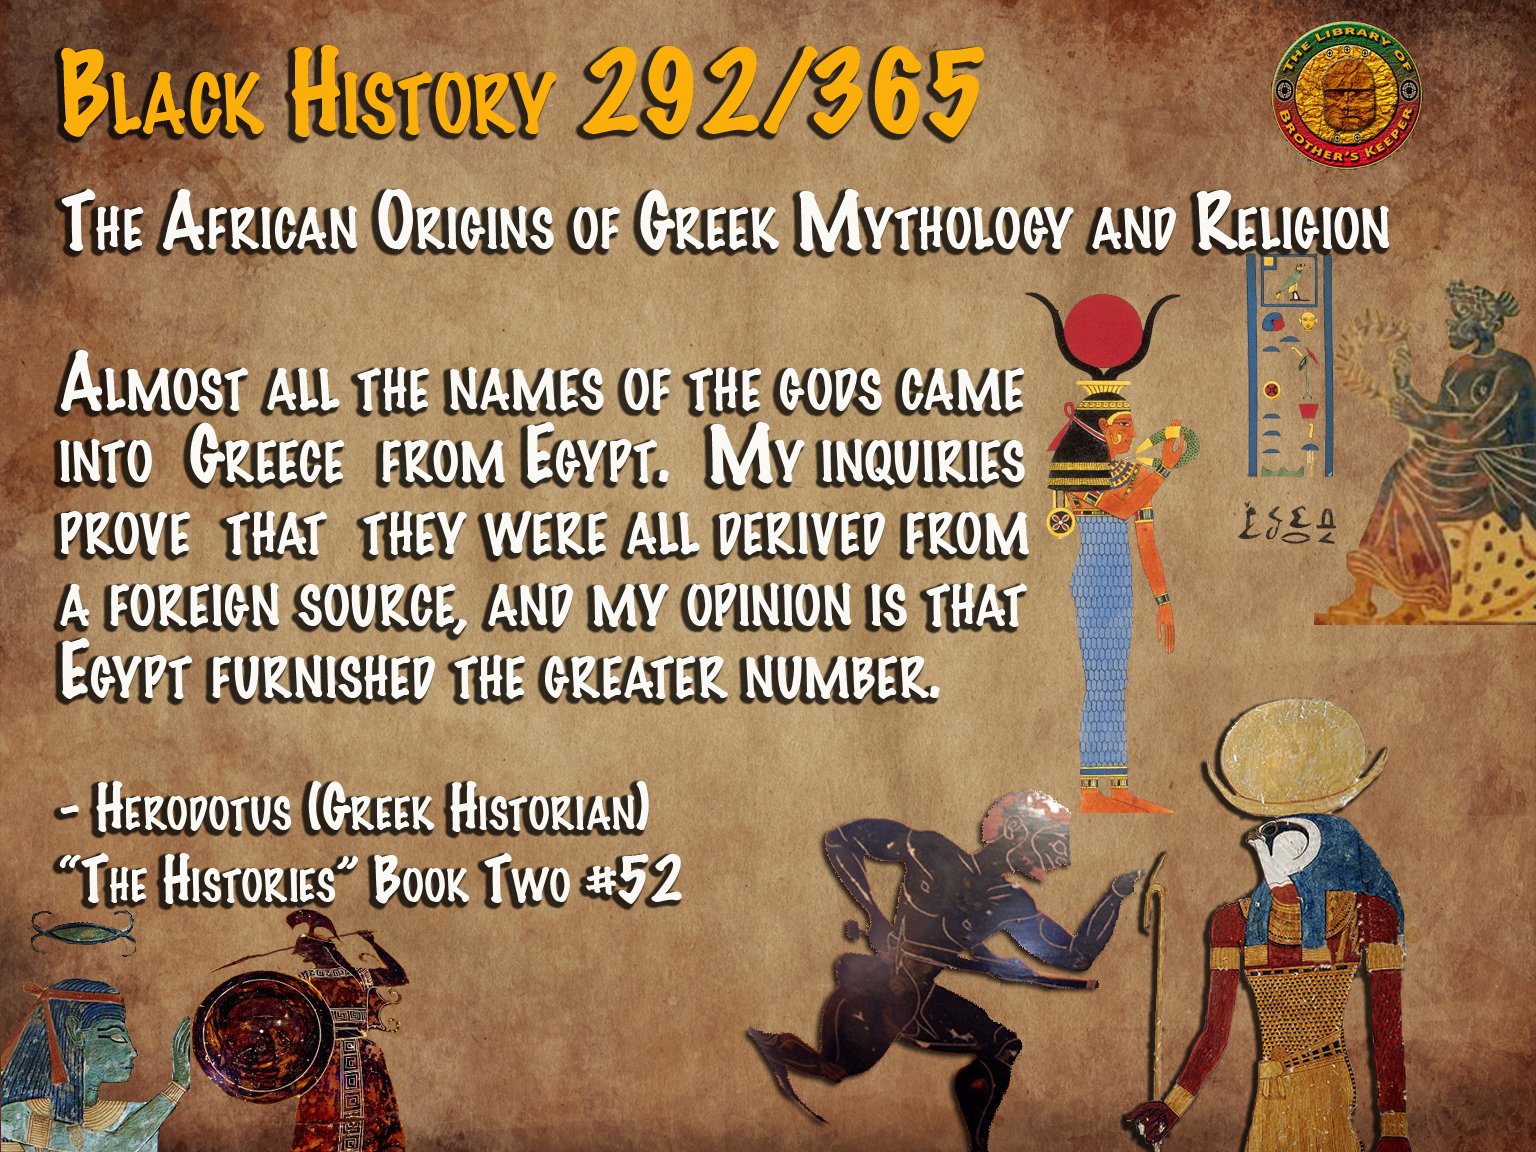 The African Origin of Greek Mythology